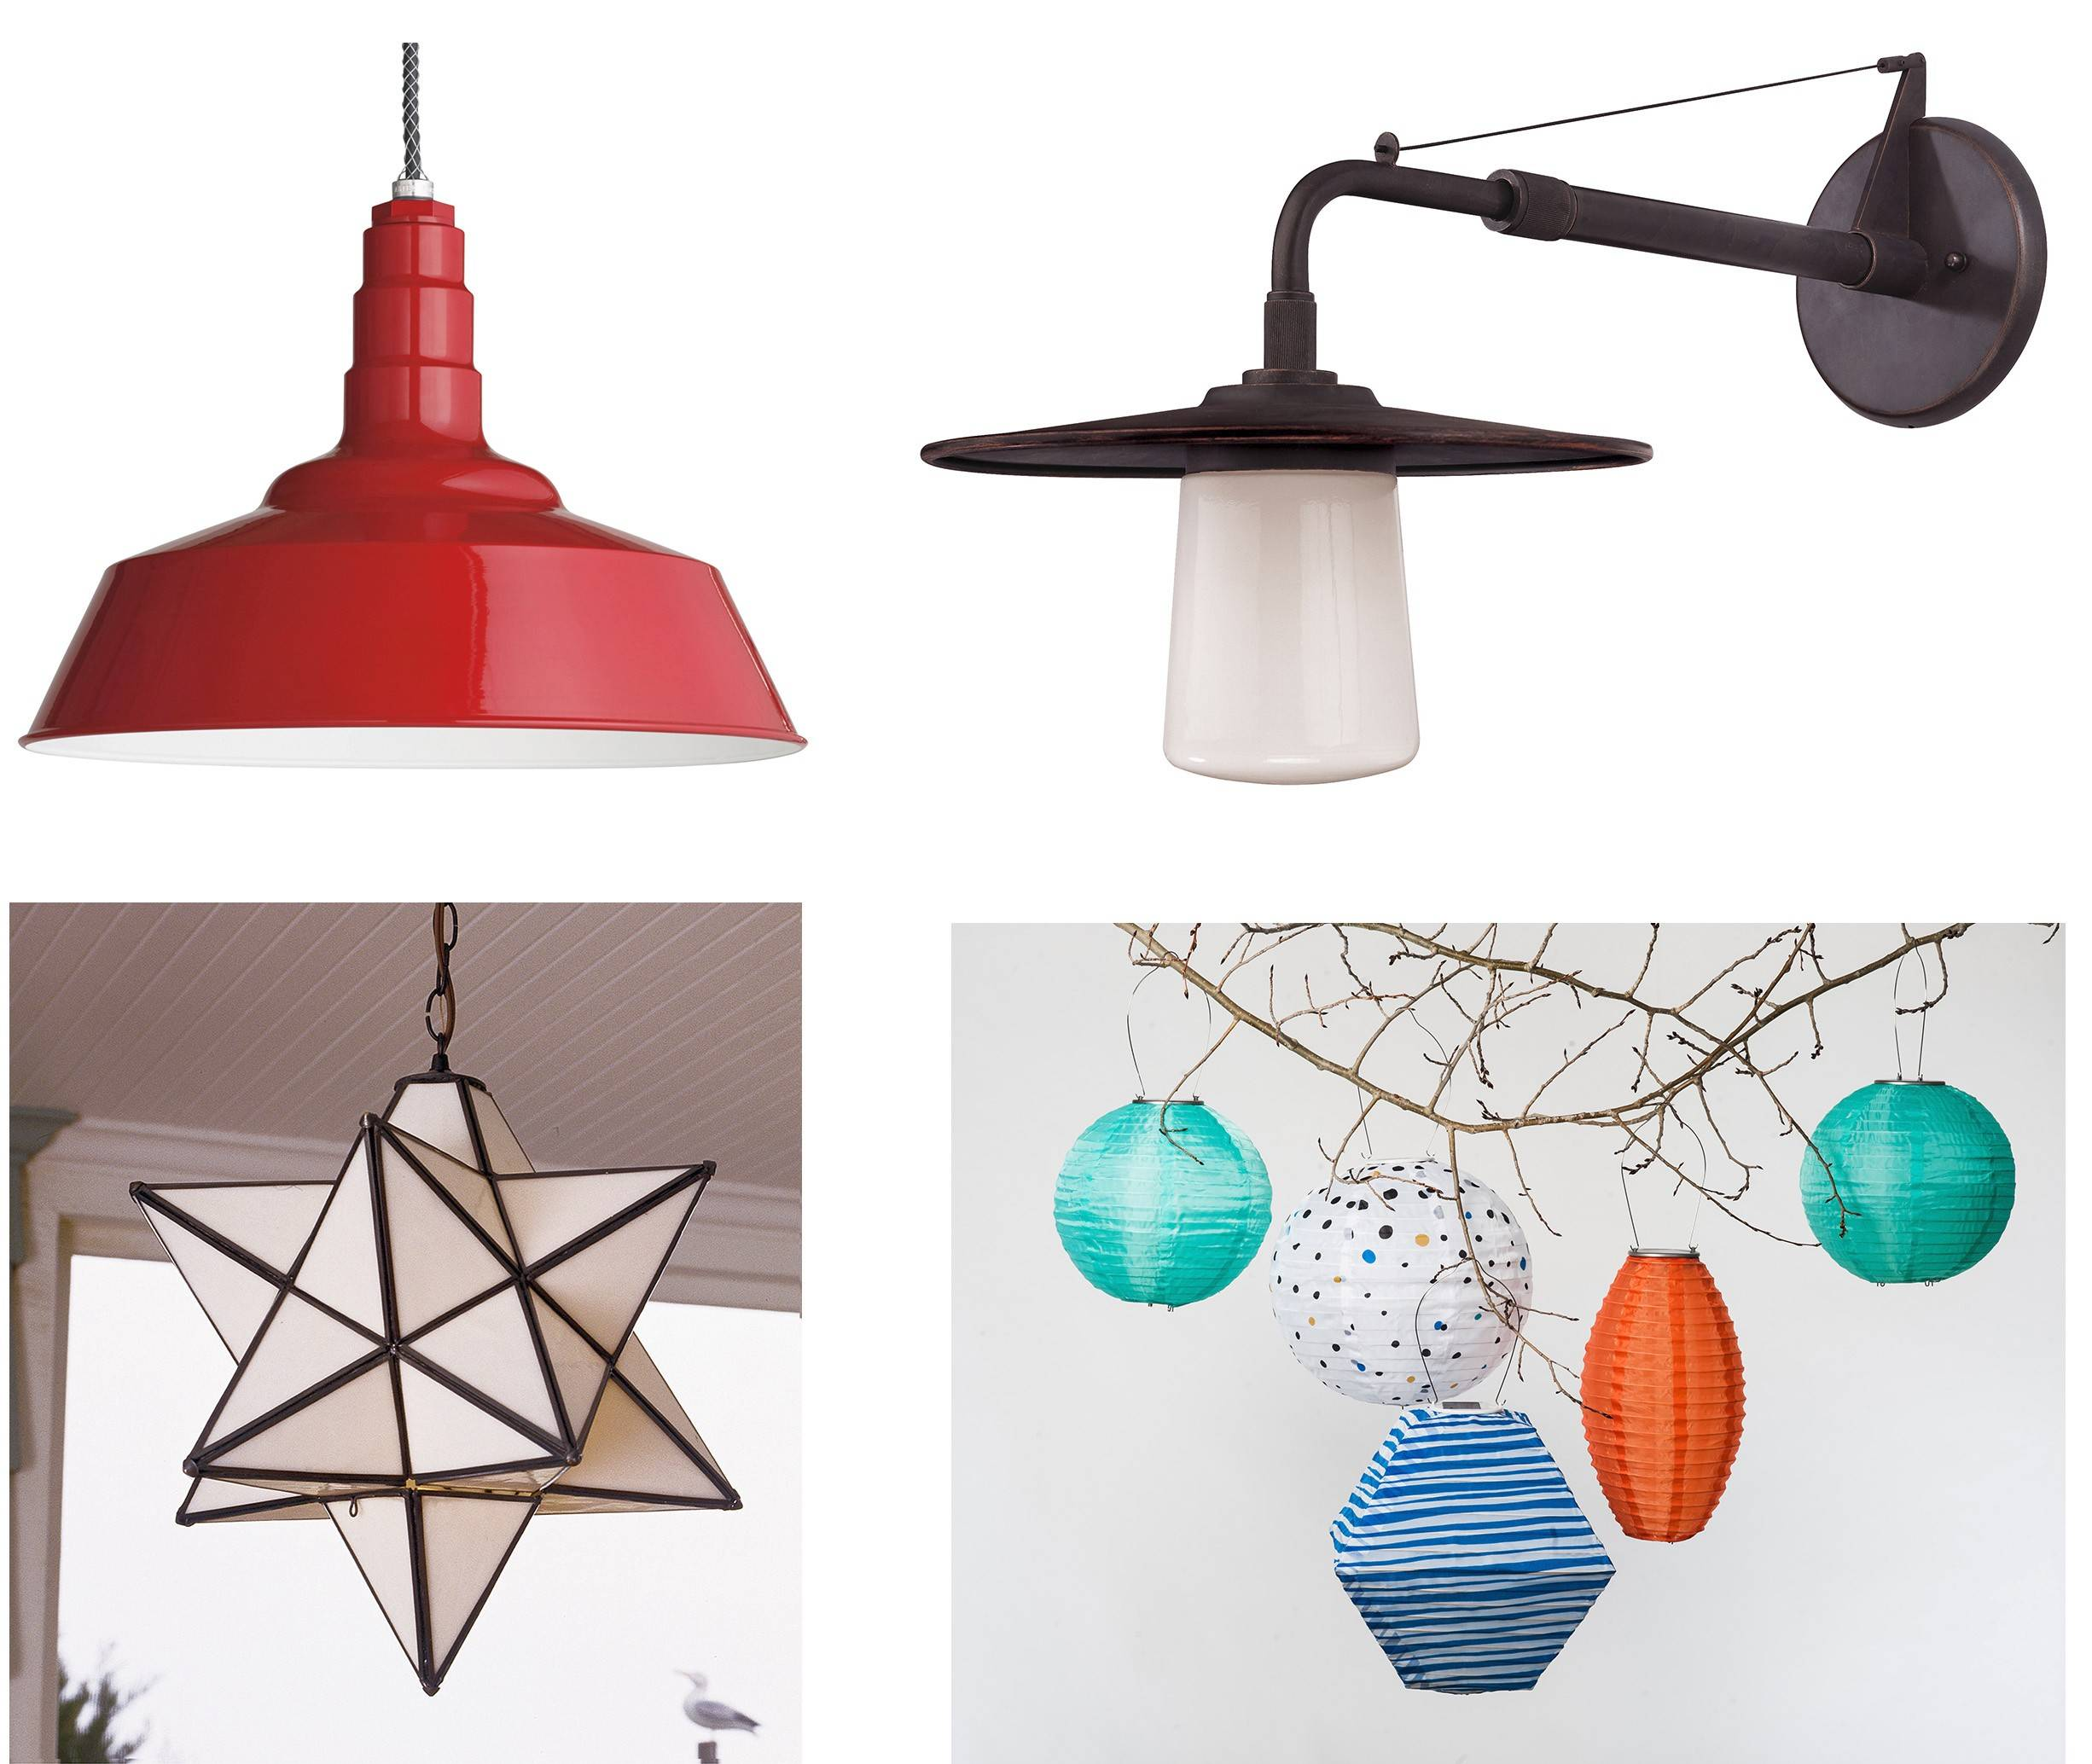 Outdoor lighting can have a dramatic impact on landscaping. Some outdoor lighting options include, clockwise from top left, Design Within Reach's pendant barn lamp, Lakehouse wall-mount lantern, Soji's hanging solar lantern and the Superior Moravian Star.